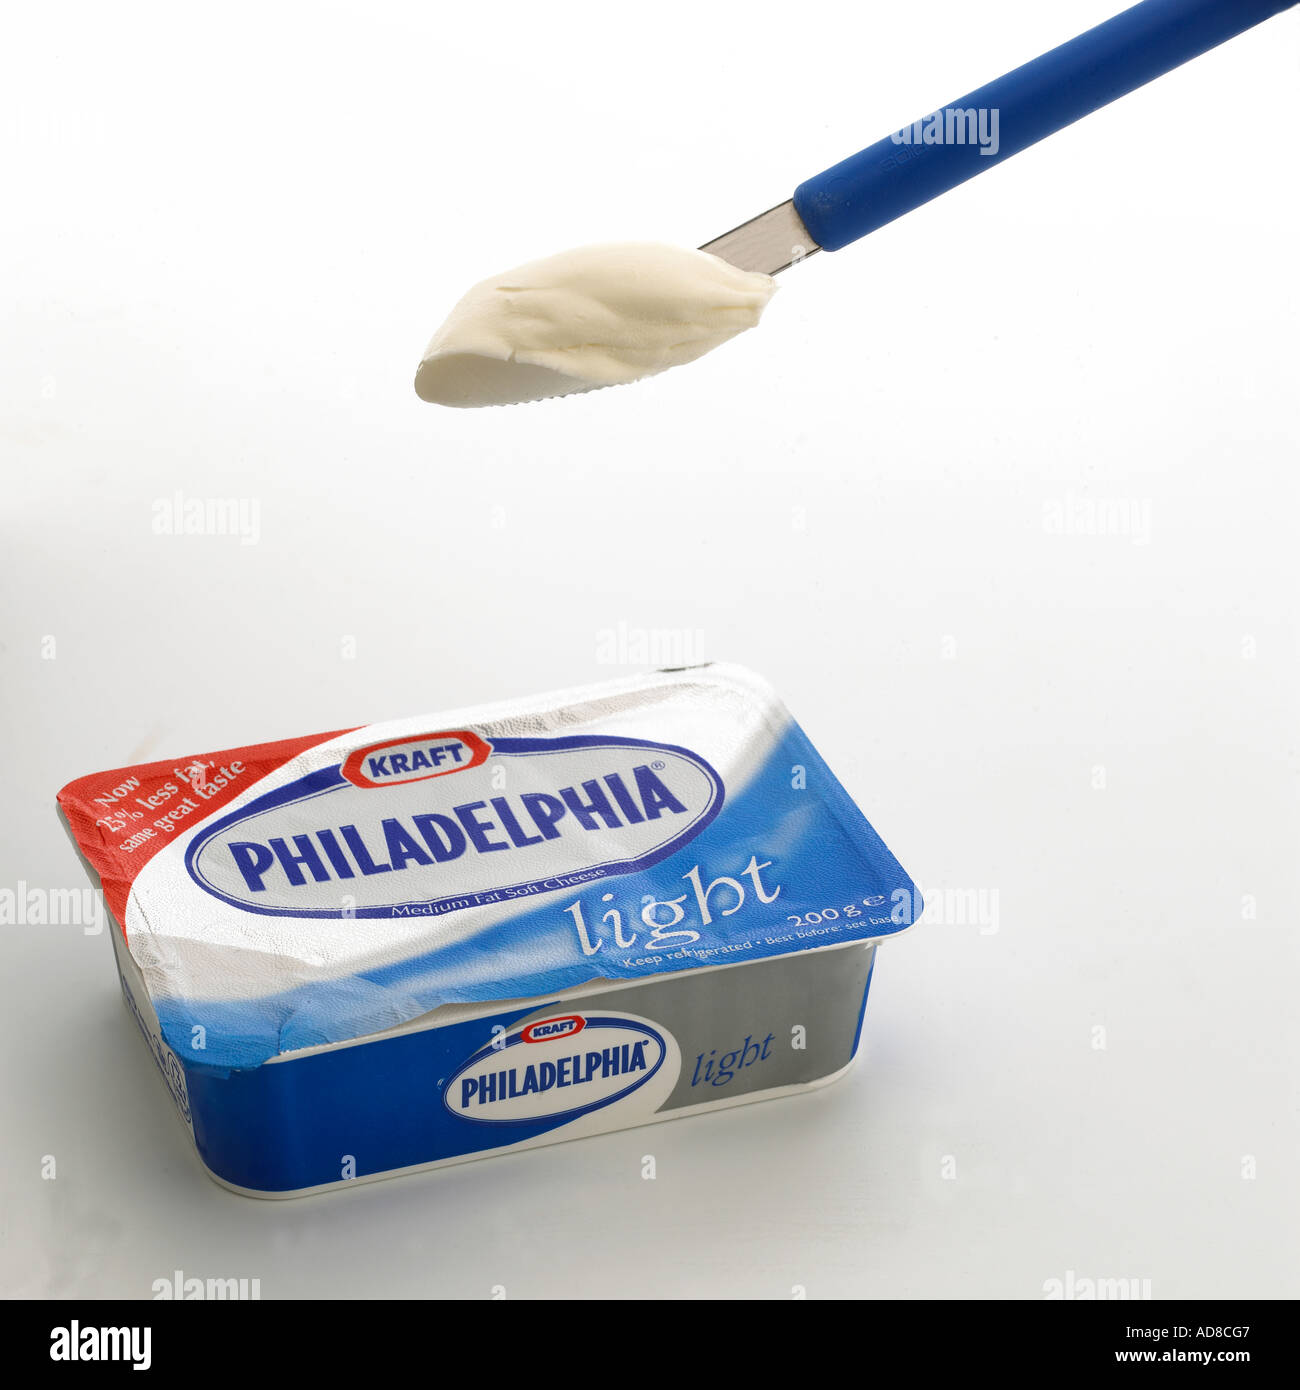 packet of philadelphia light cream cheese with small knife loaded